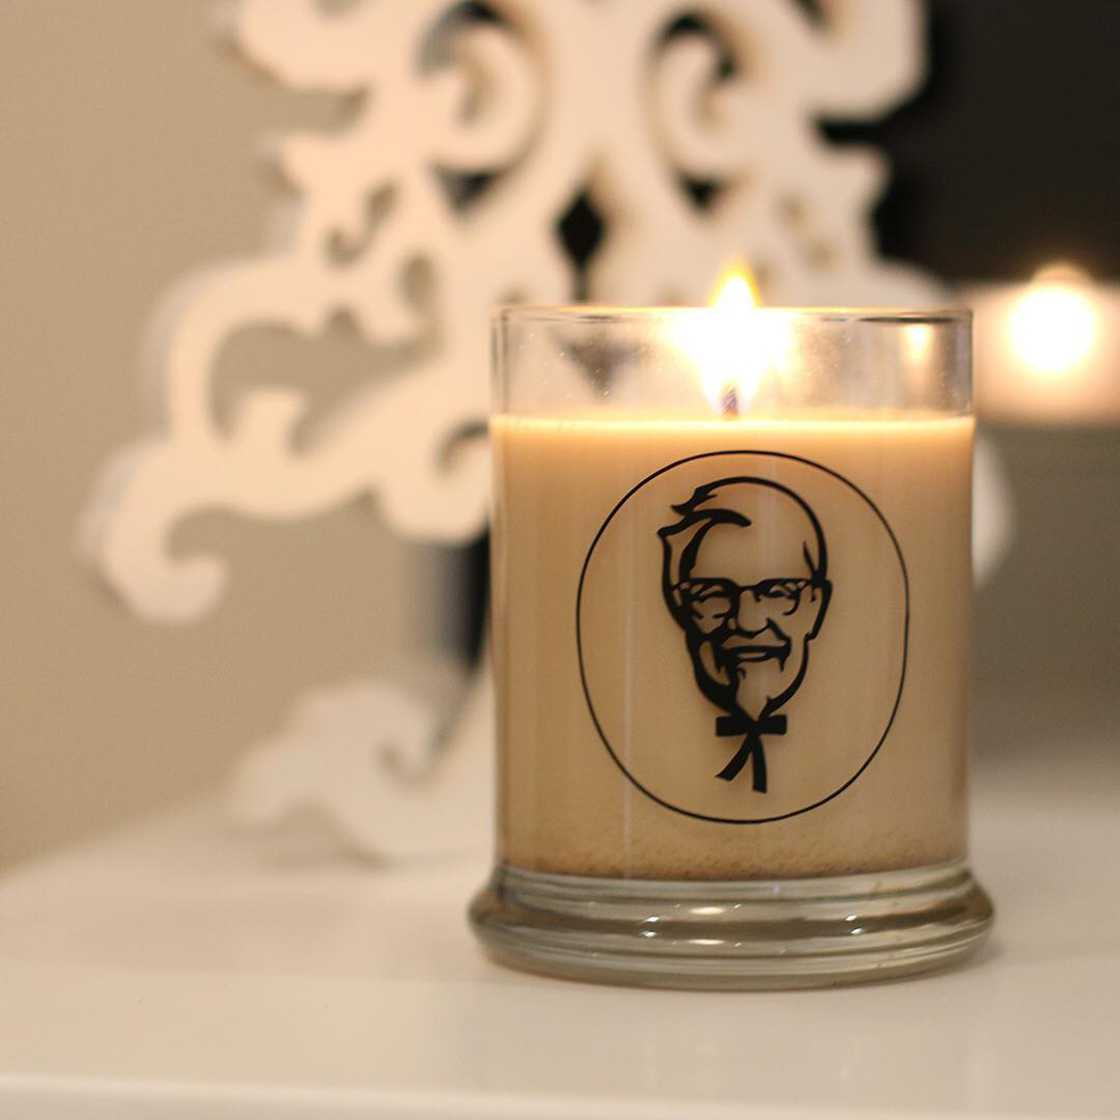 KFC - A fried chicken scented candle